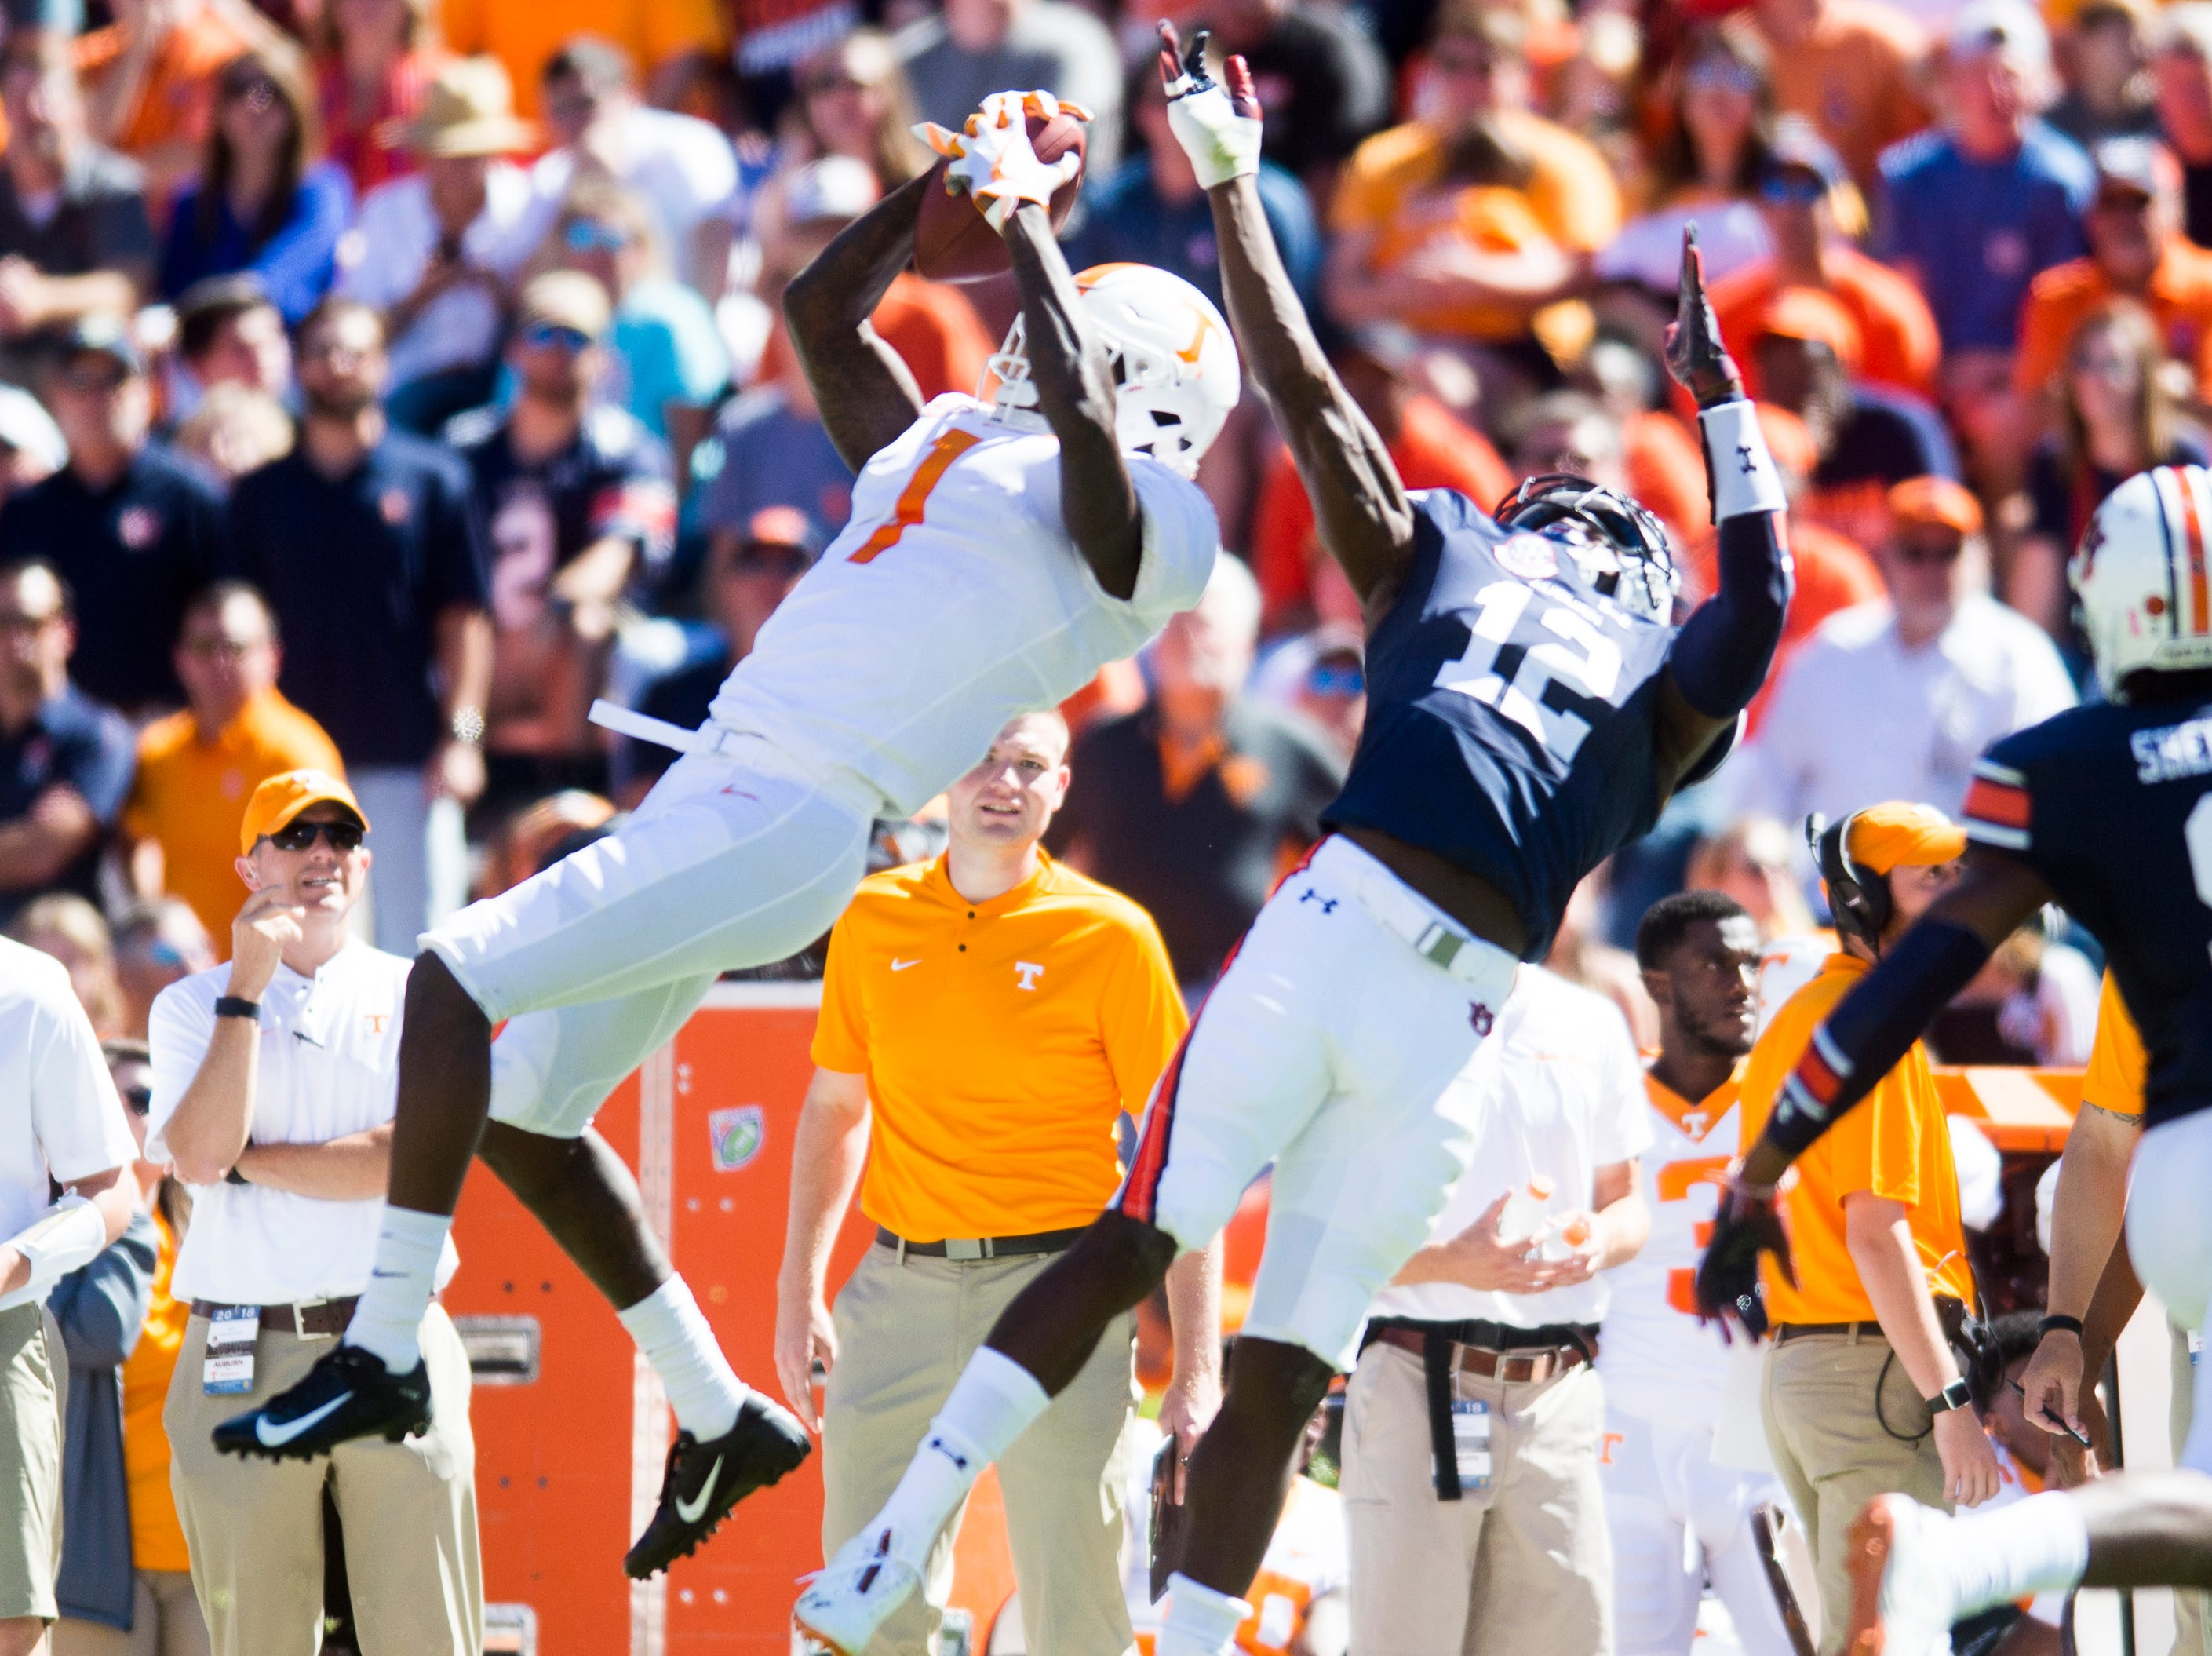 Tennessee wide receiver Marquez Callaway (1) makes a catch as Auburn defensive back Jamel Dean (12) defends during a game between Tennessee and Auburn at Jordan-Hare Stadium in Auburn, Alabama on Saturday, October 13, 2018.